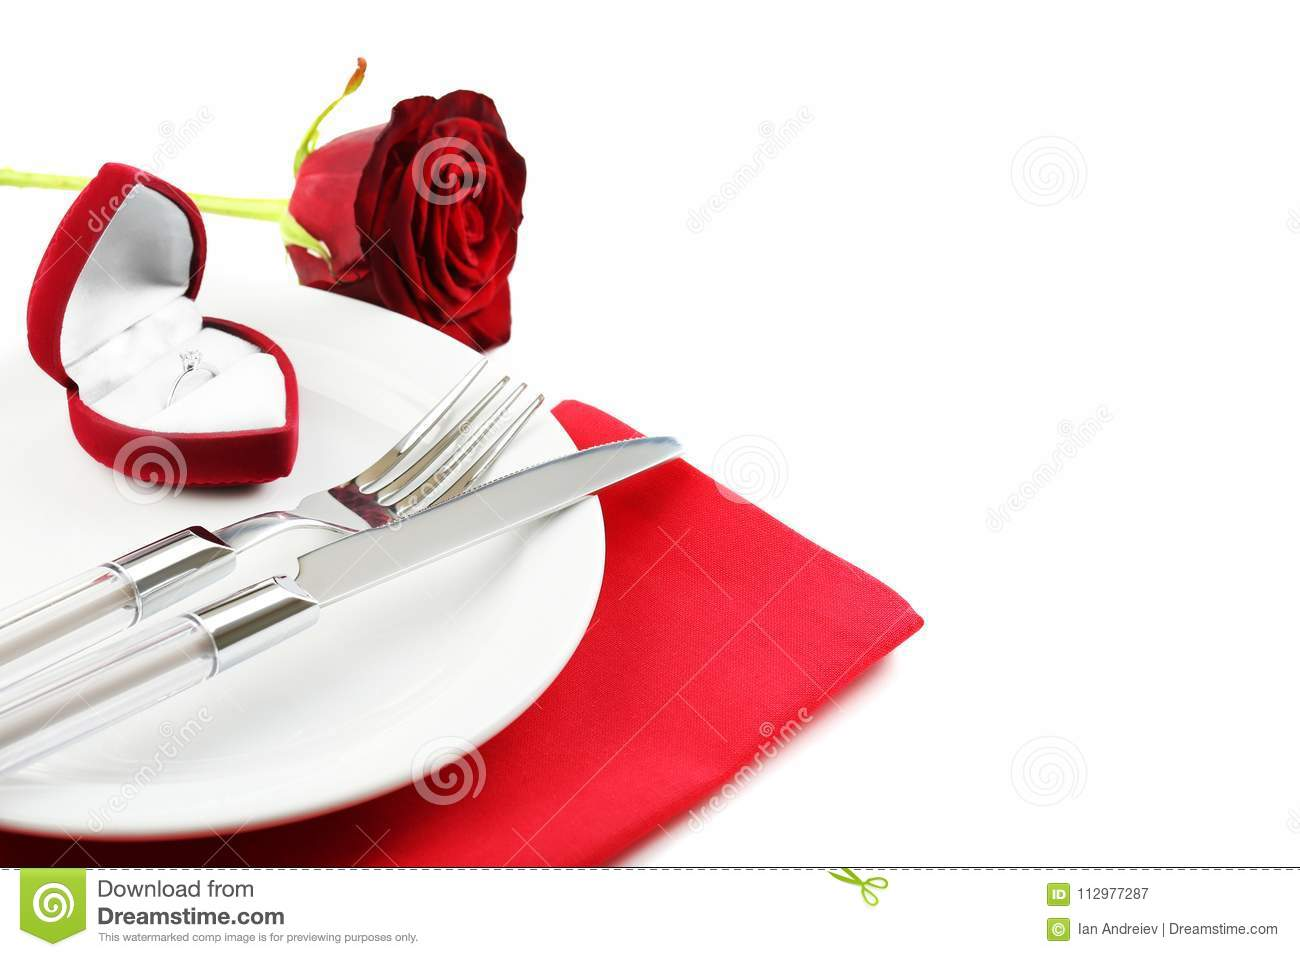 Kitchen cutlery with ring and red rose